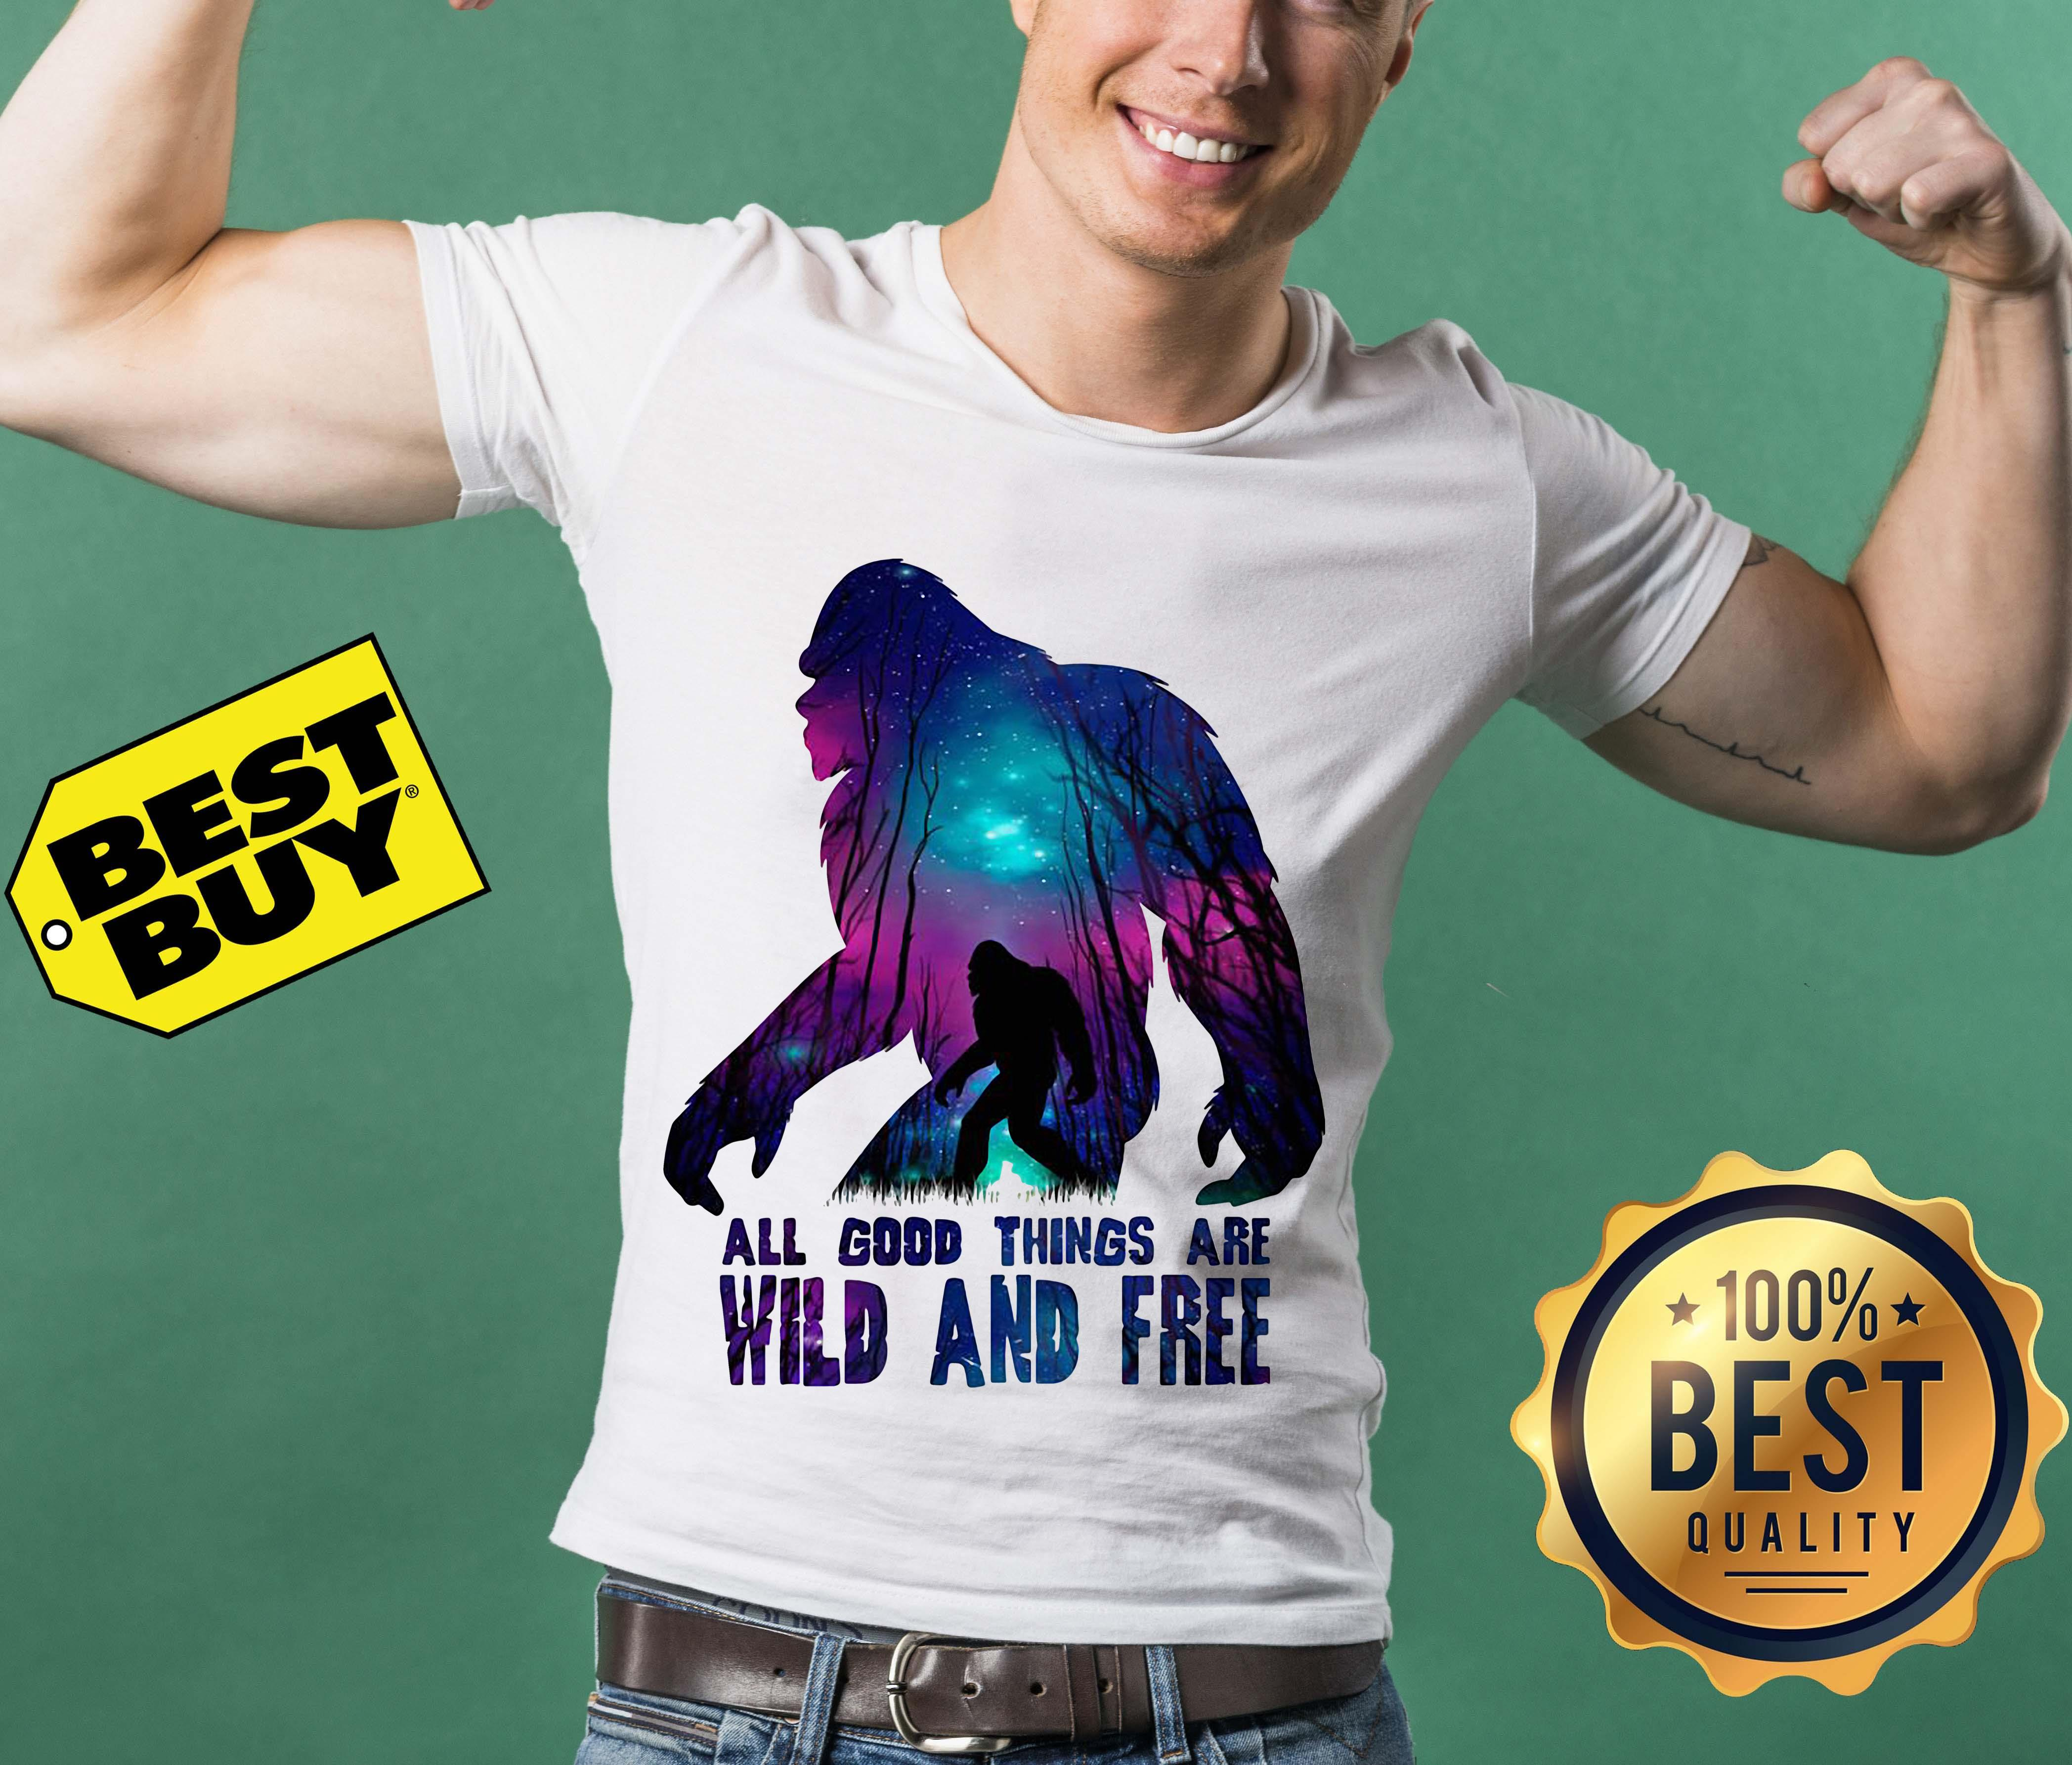 All good things wild and free hoodie